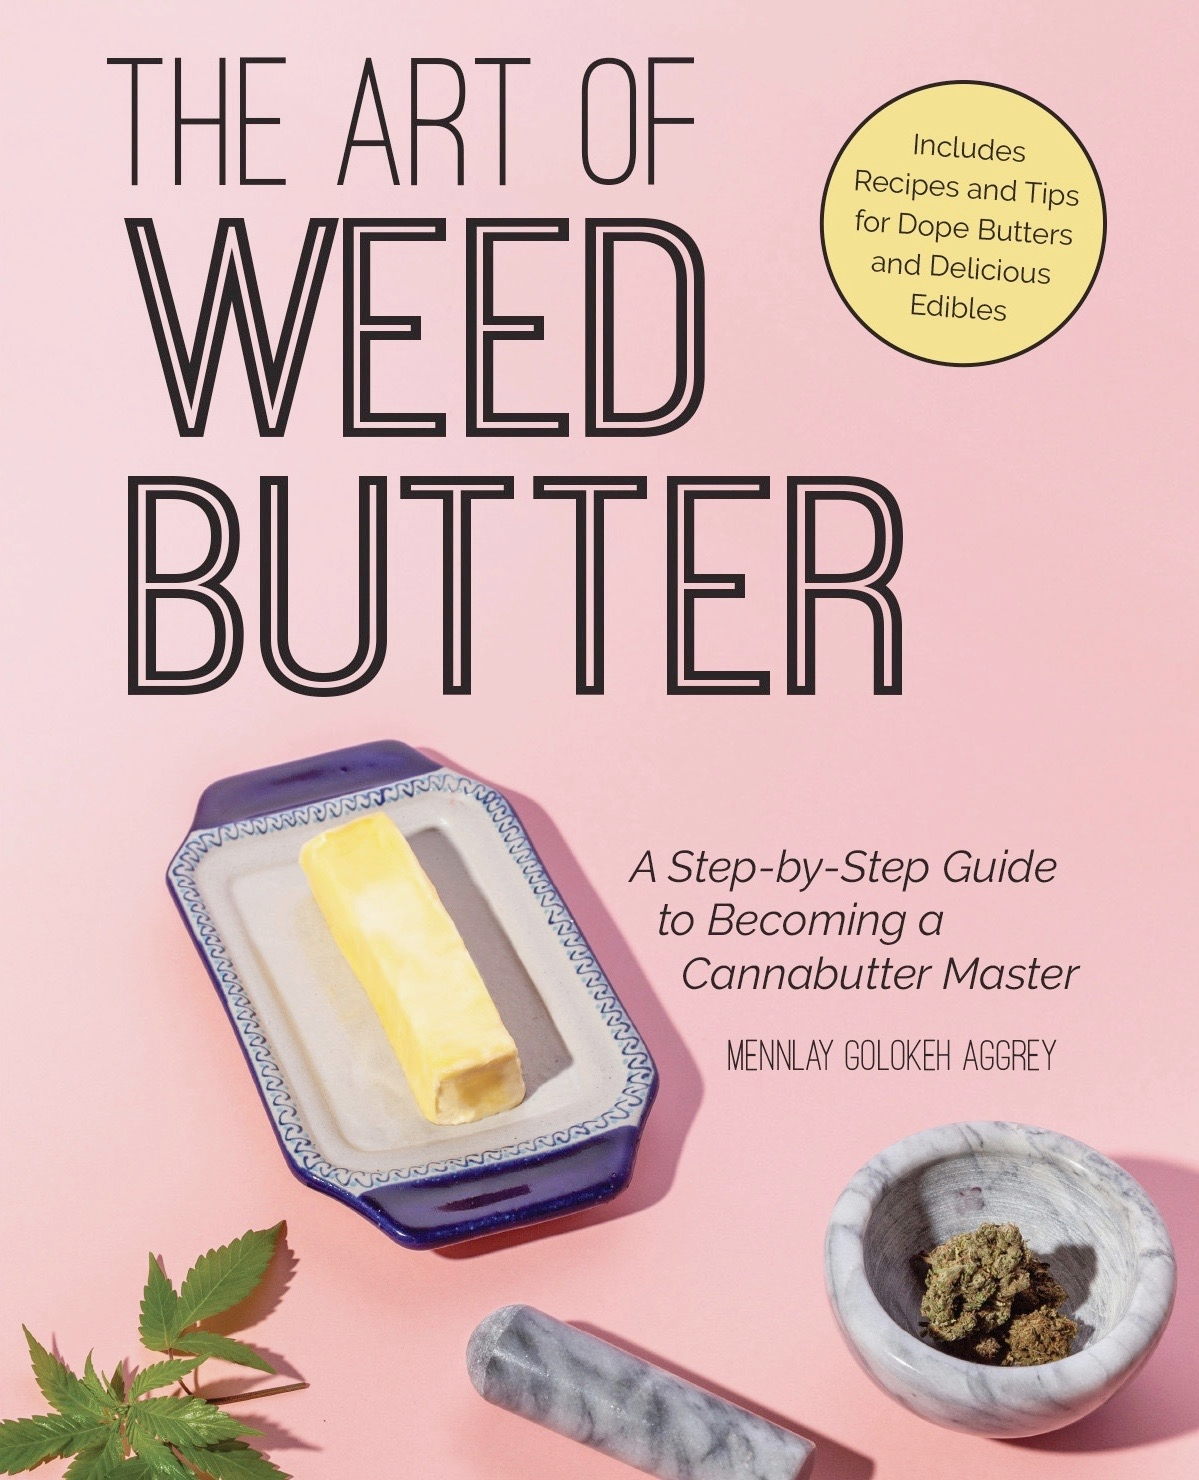 The Art of Weed Butter - Recipes and Tips for Dope Cannabutters and Delicious Edibles – My down to earth guide to cooking with cannabis walks you through cannabis infusions with butter, coconut oil, and even bacon fat — all while touching on social injustice issues, what to do if you get too high, and 35 edibles recipes! Support black women voices in cannabis and grab a copy today.